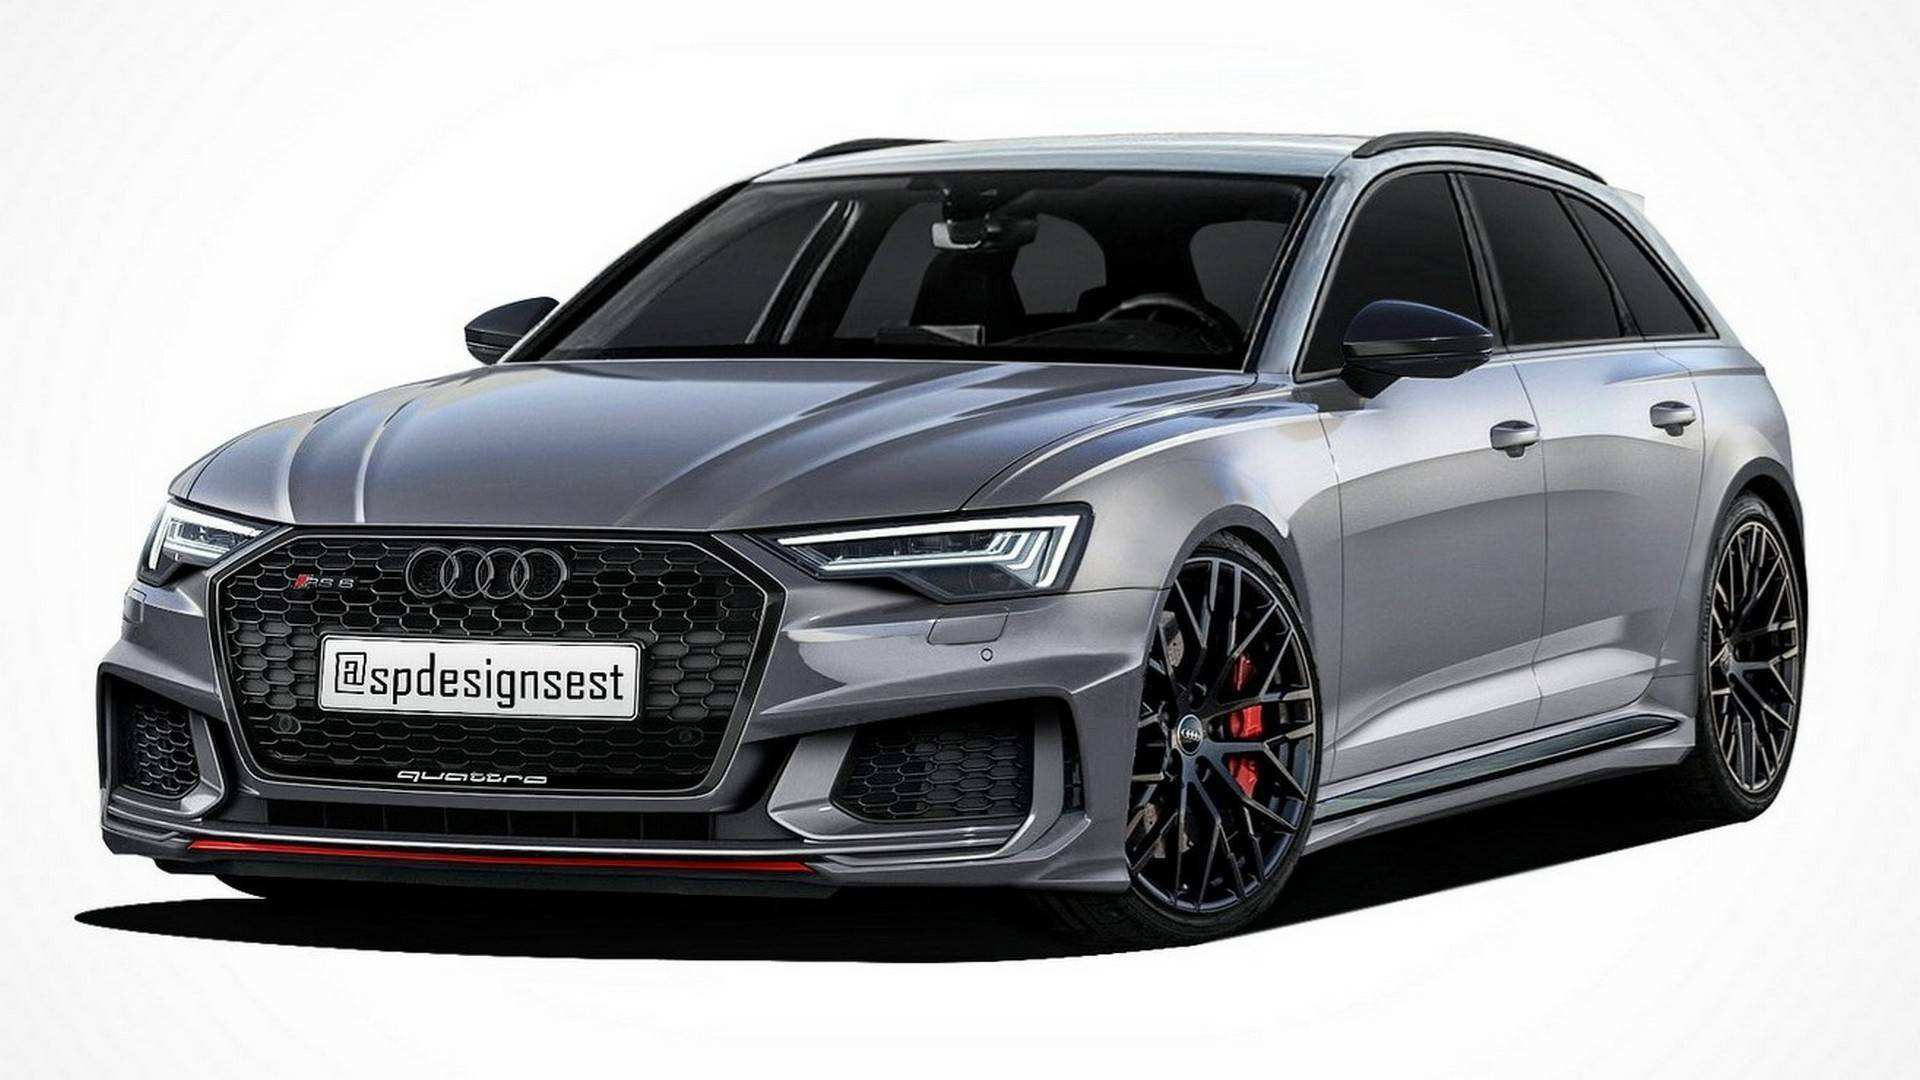 67 Best Review 2019 Audi Rs6 Spesification with 2019 Audi Rs6